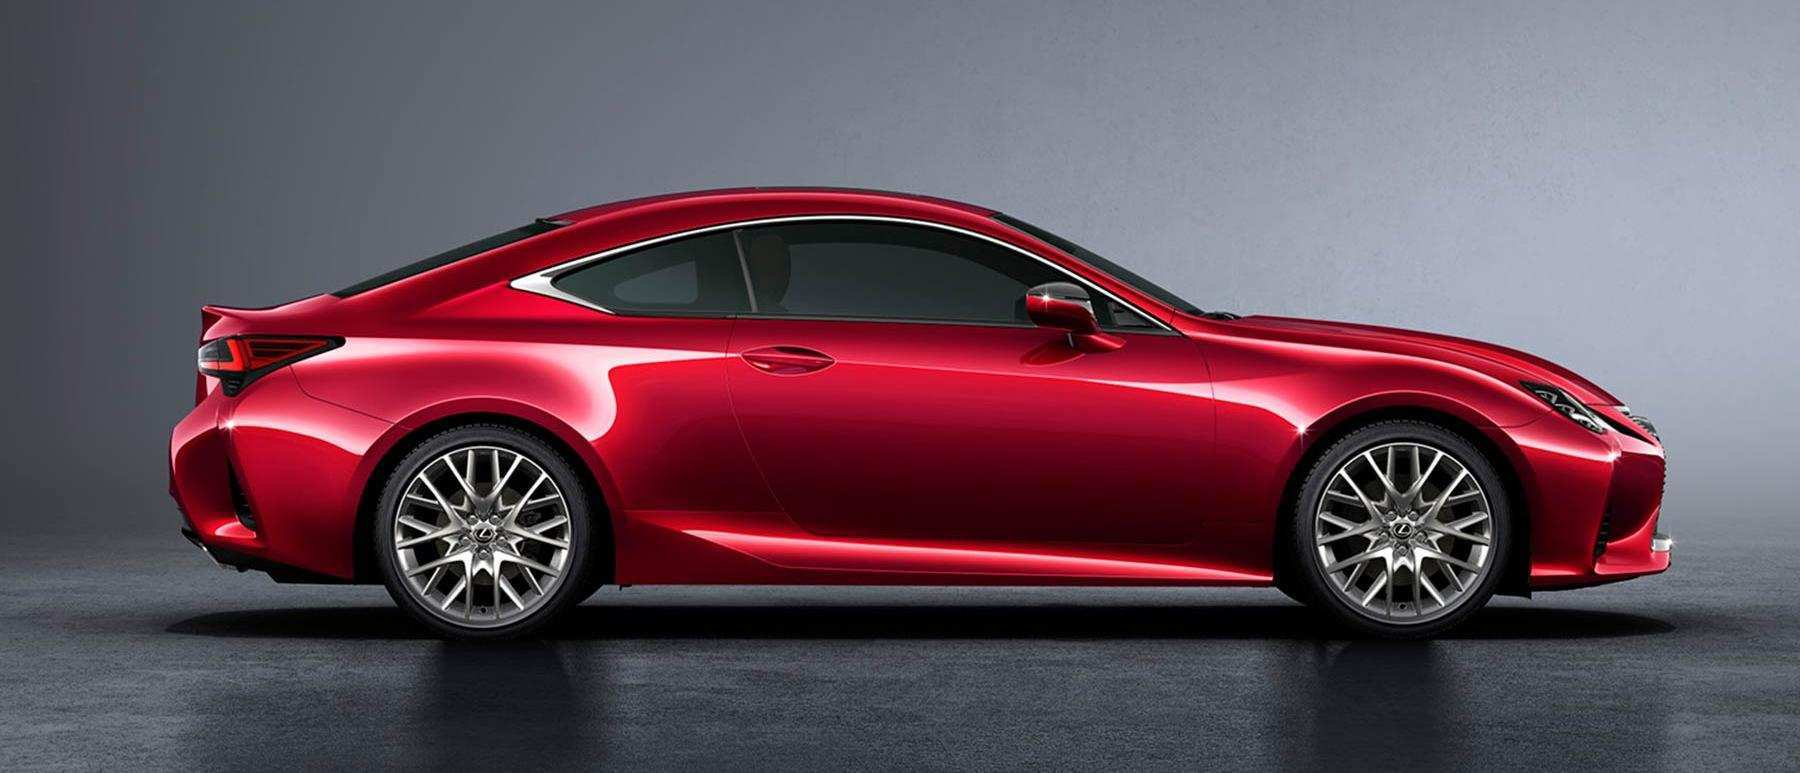 62 A Lexus 2019 Coupe Spy Shoot